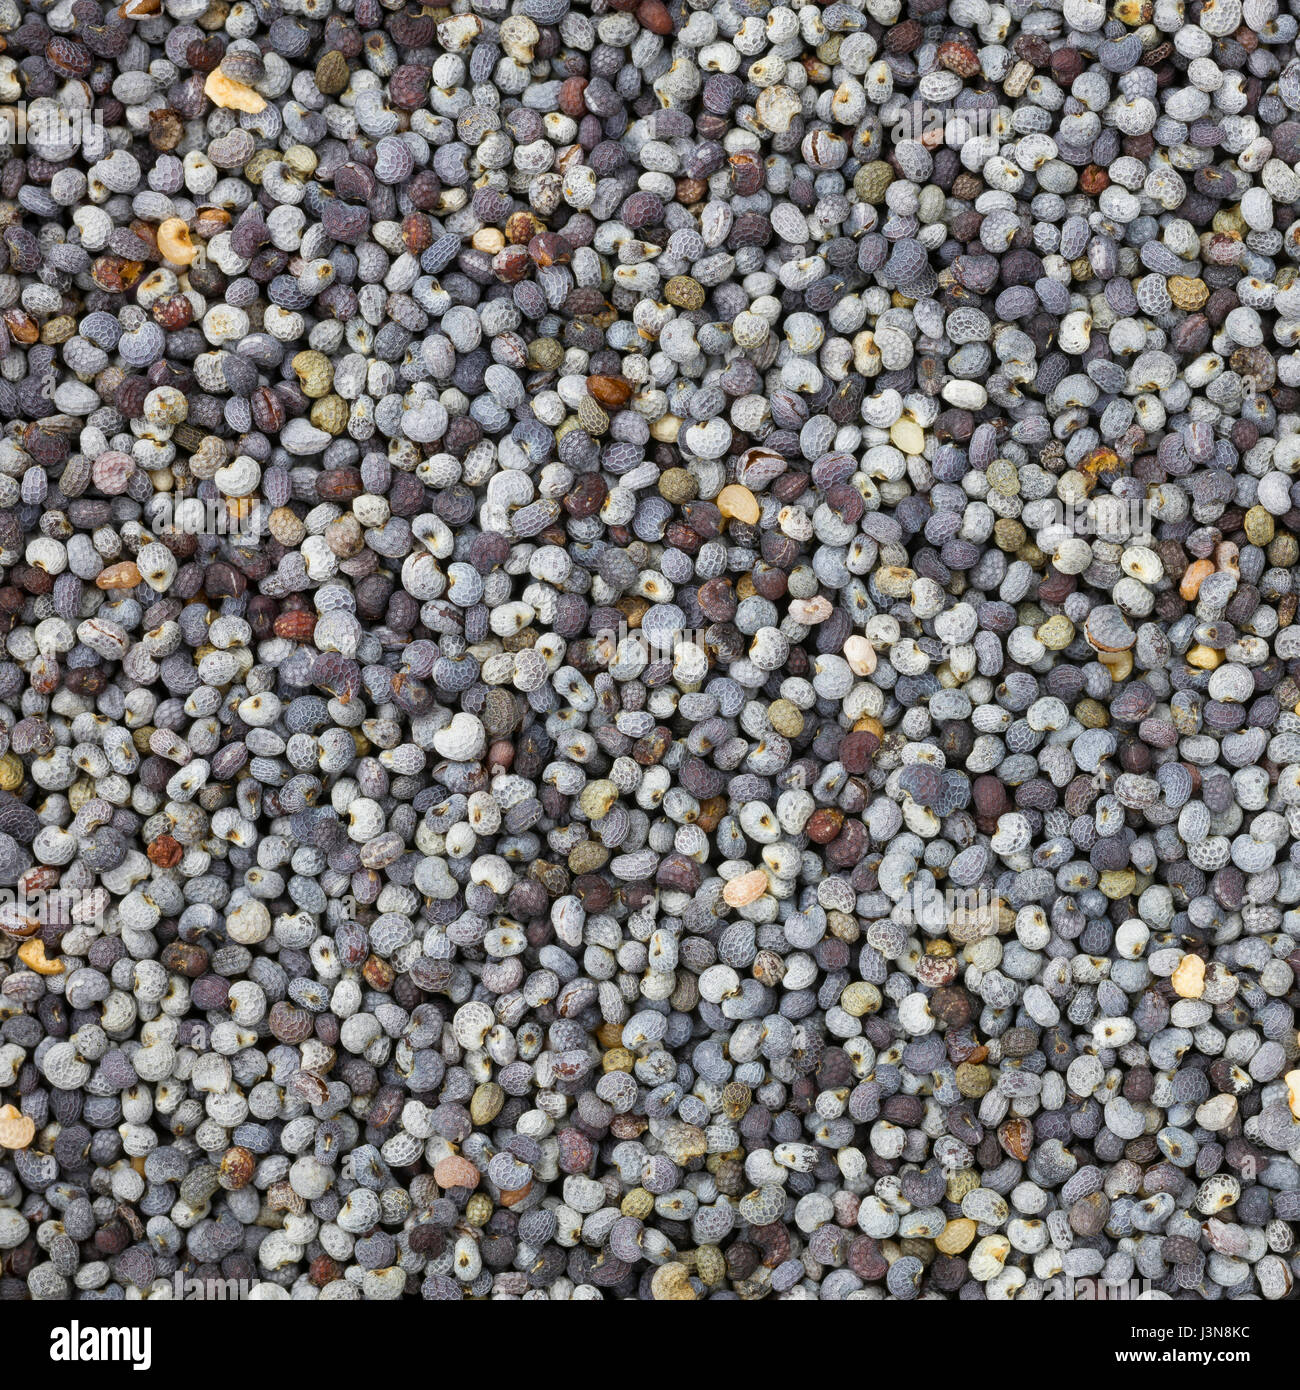 Poppy seeds background or texture. Close up photography - Stock Image